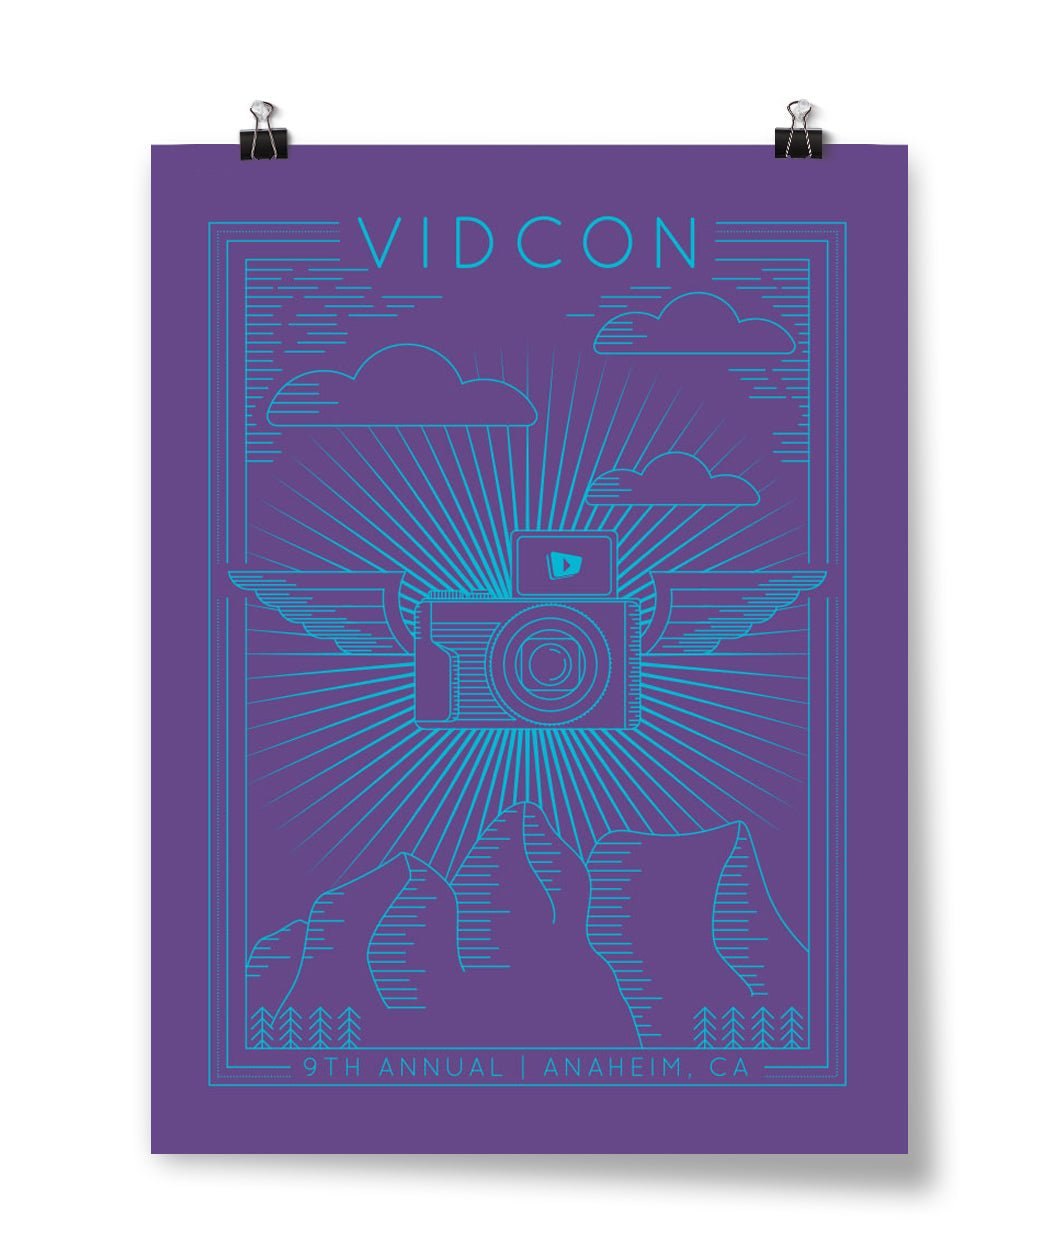 9th Annual Screen printed VidCon Poster